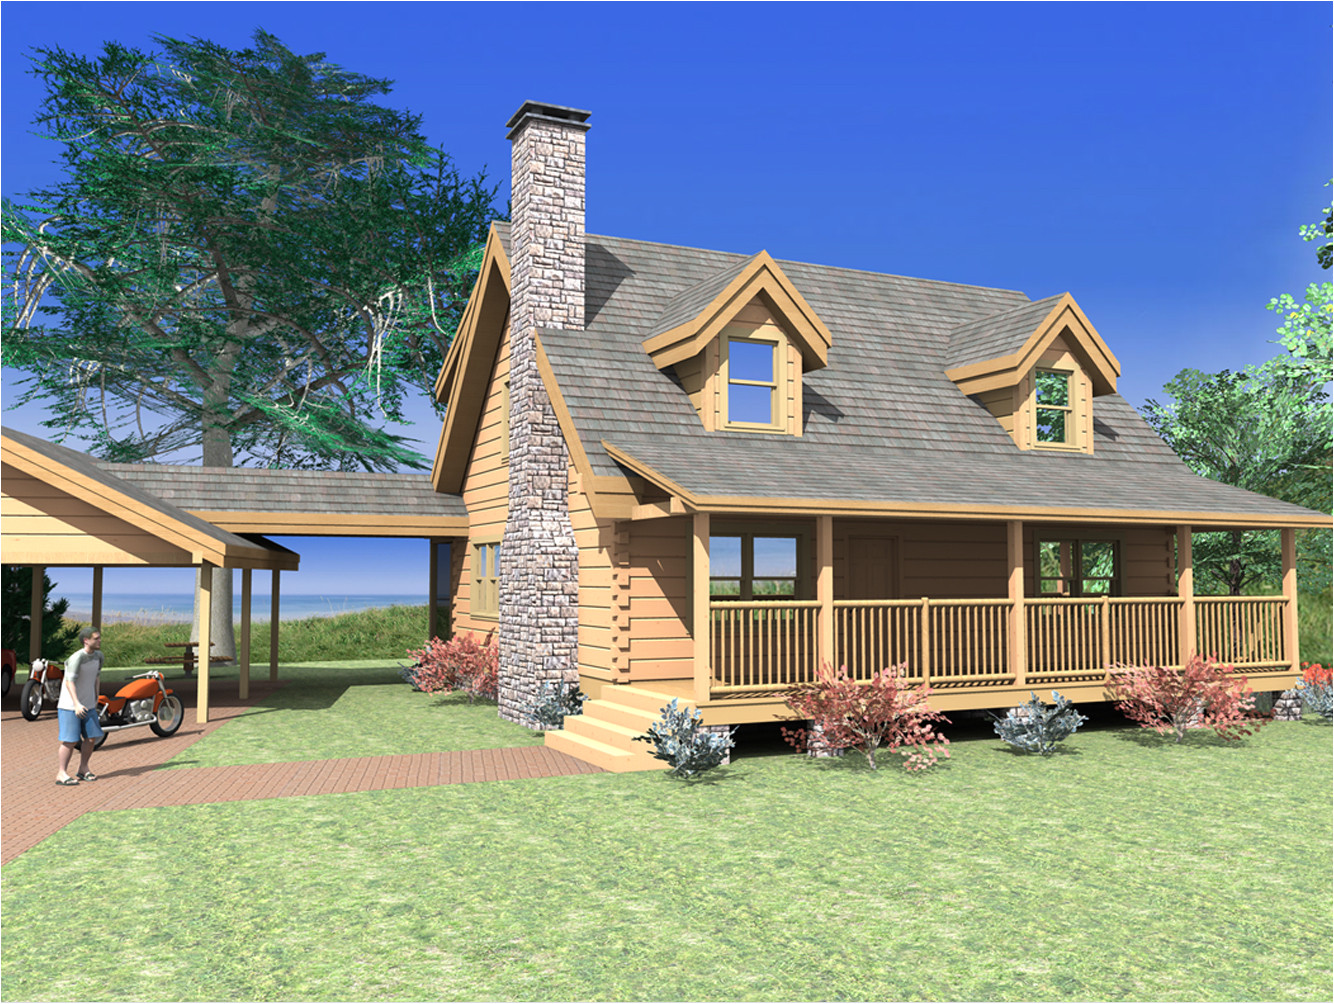 House Plans Log Homes Log Home Plans From 1 500 to 2 000 Sq Ft Custom Timber